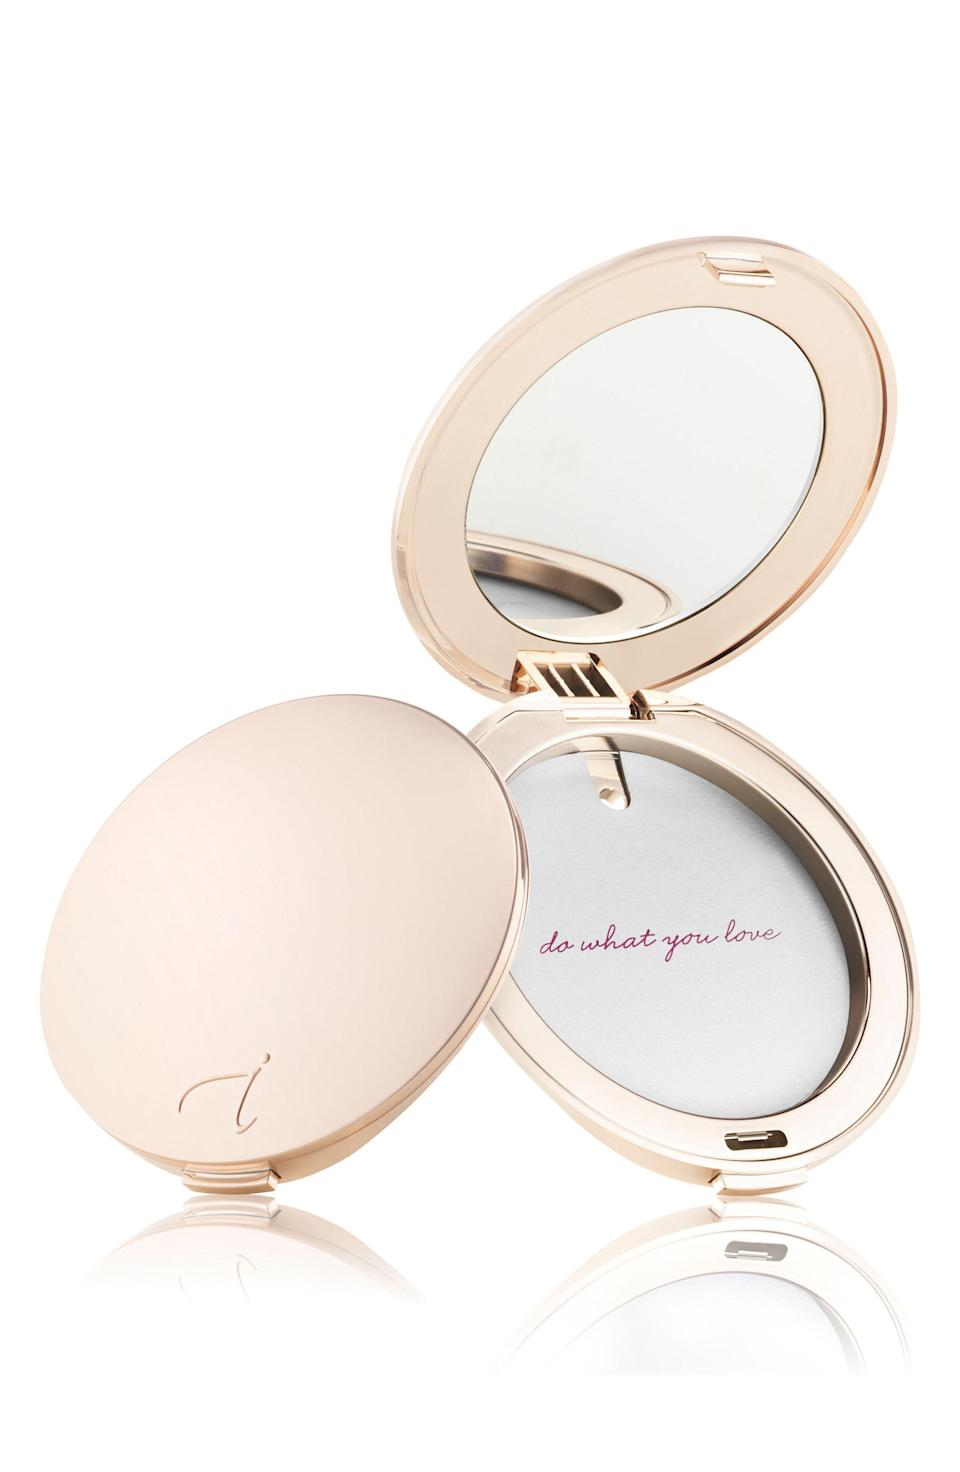 "<p><strong>Jane Iredale</strong></p><p>nordstrom.com</p><p><strong>$18.00</strong></p><p><a href=""https://shop.nordstrom.com/s/jane-iredale-refillable-compact/3116583"" rel=""nofollow noopener"" target=""_blank"" data-ylk=""slk:SHOP NOW"" class=""link rapid-noclick-resp"">SHOP NOW</a></p><p>Though your girl looks perfect 24/7 (obviously), she'll love touching up <a href=""https://www.womansday.com/style/beauty/"" rel=""nofollow noopener"" target=""_blank"" data-ylk=""slk:her makeup"" class=""link rapid-noclick-resp"">her makeup</a> with this glamorous compact.</p>"